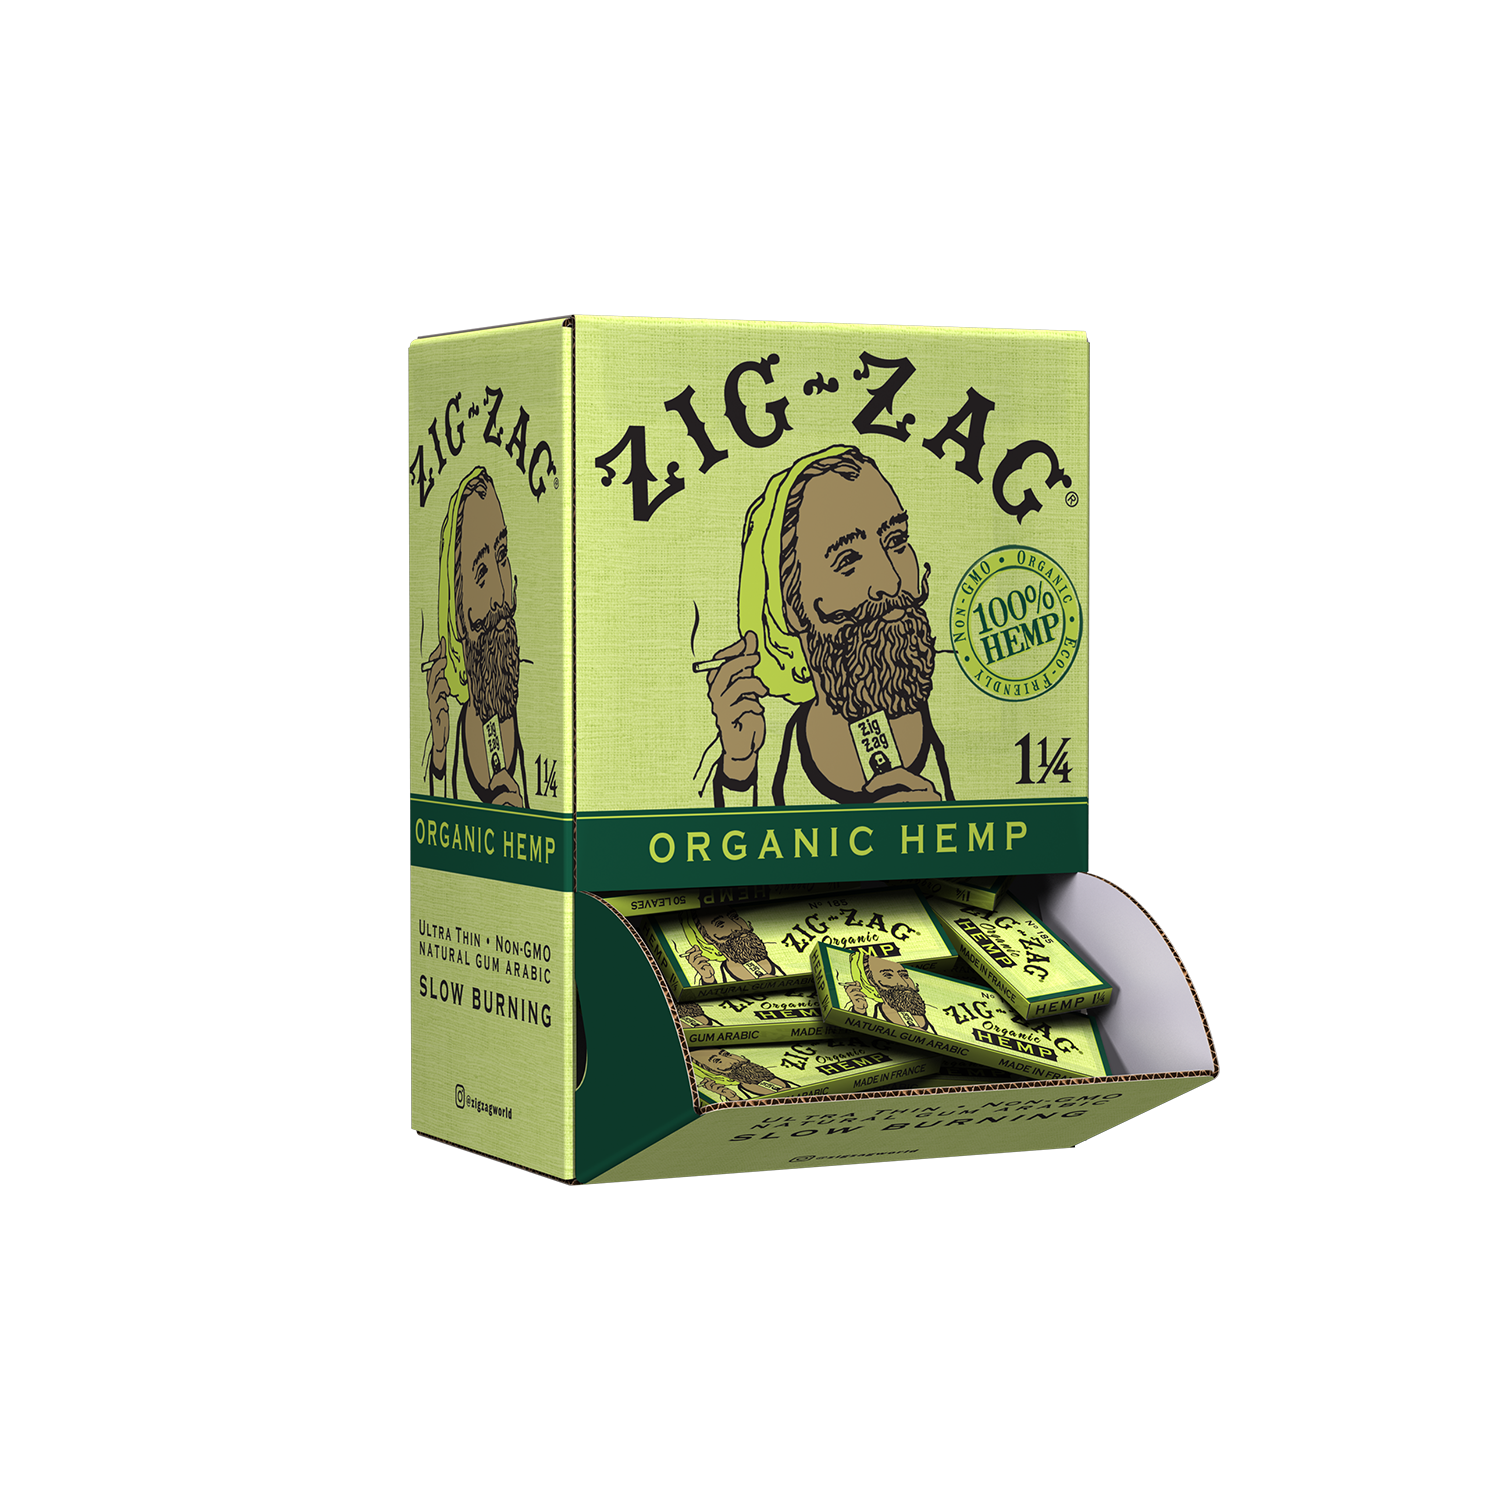 Promo Display (48 Pack) - 1 1/4 Organic Hemp Papers